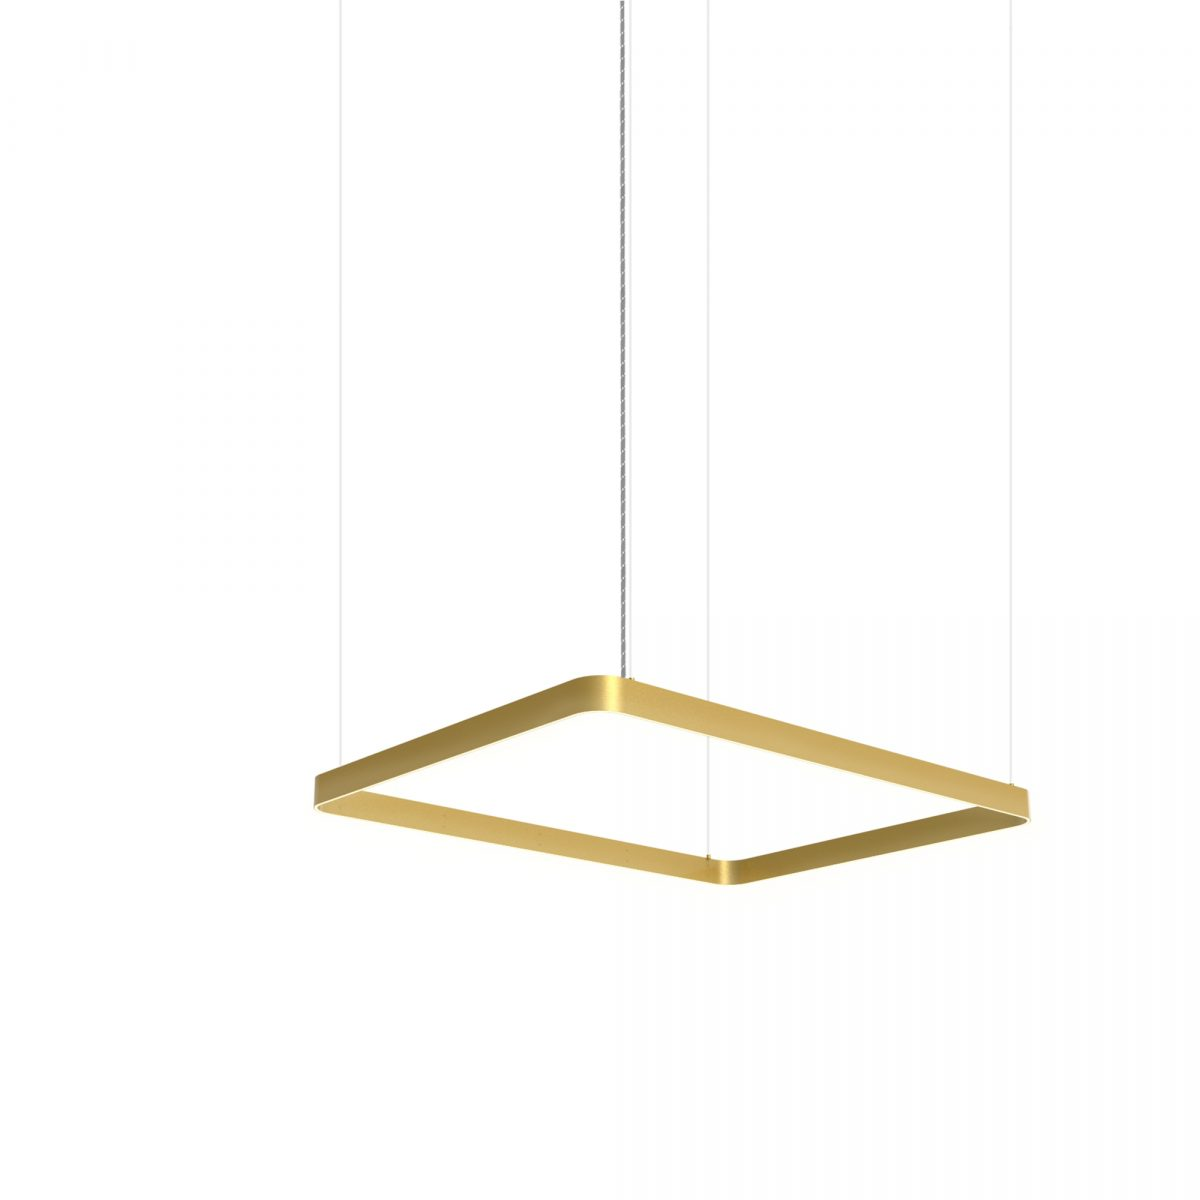 JSPR Eden 75×100 Gold Rectangle